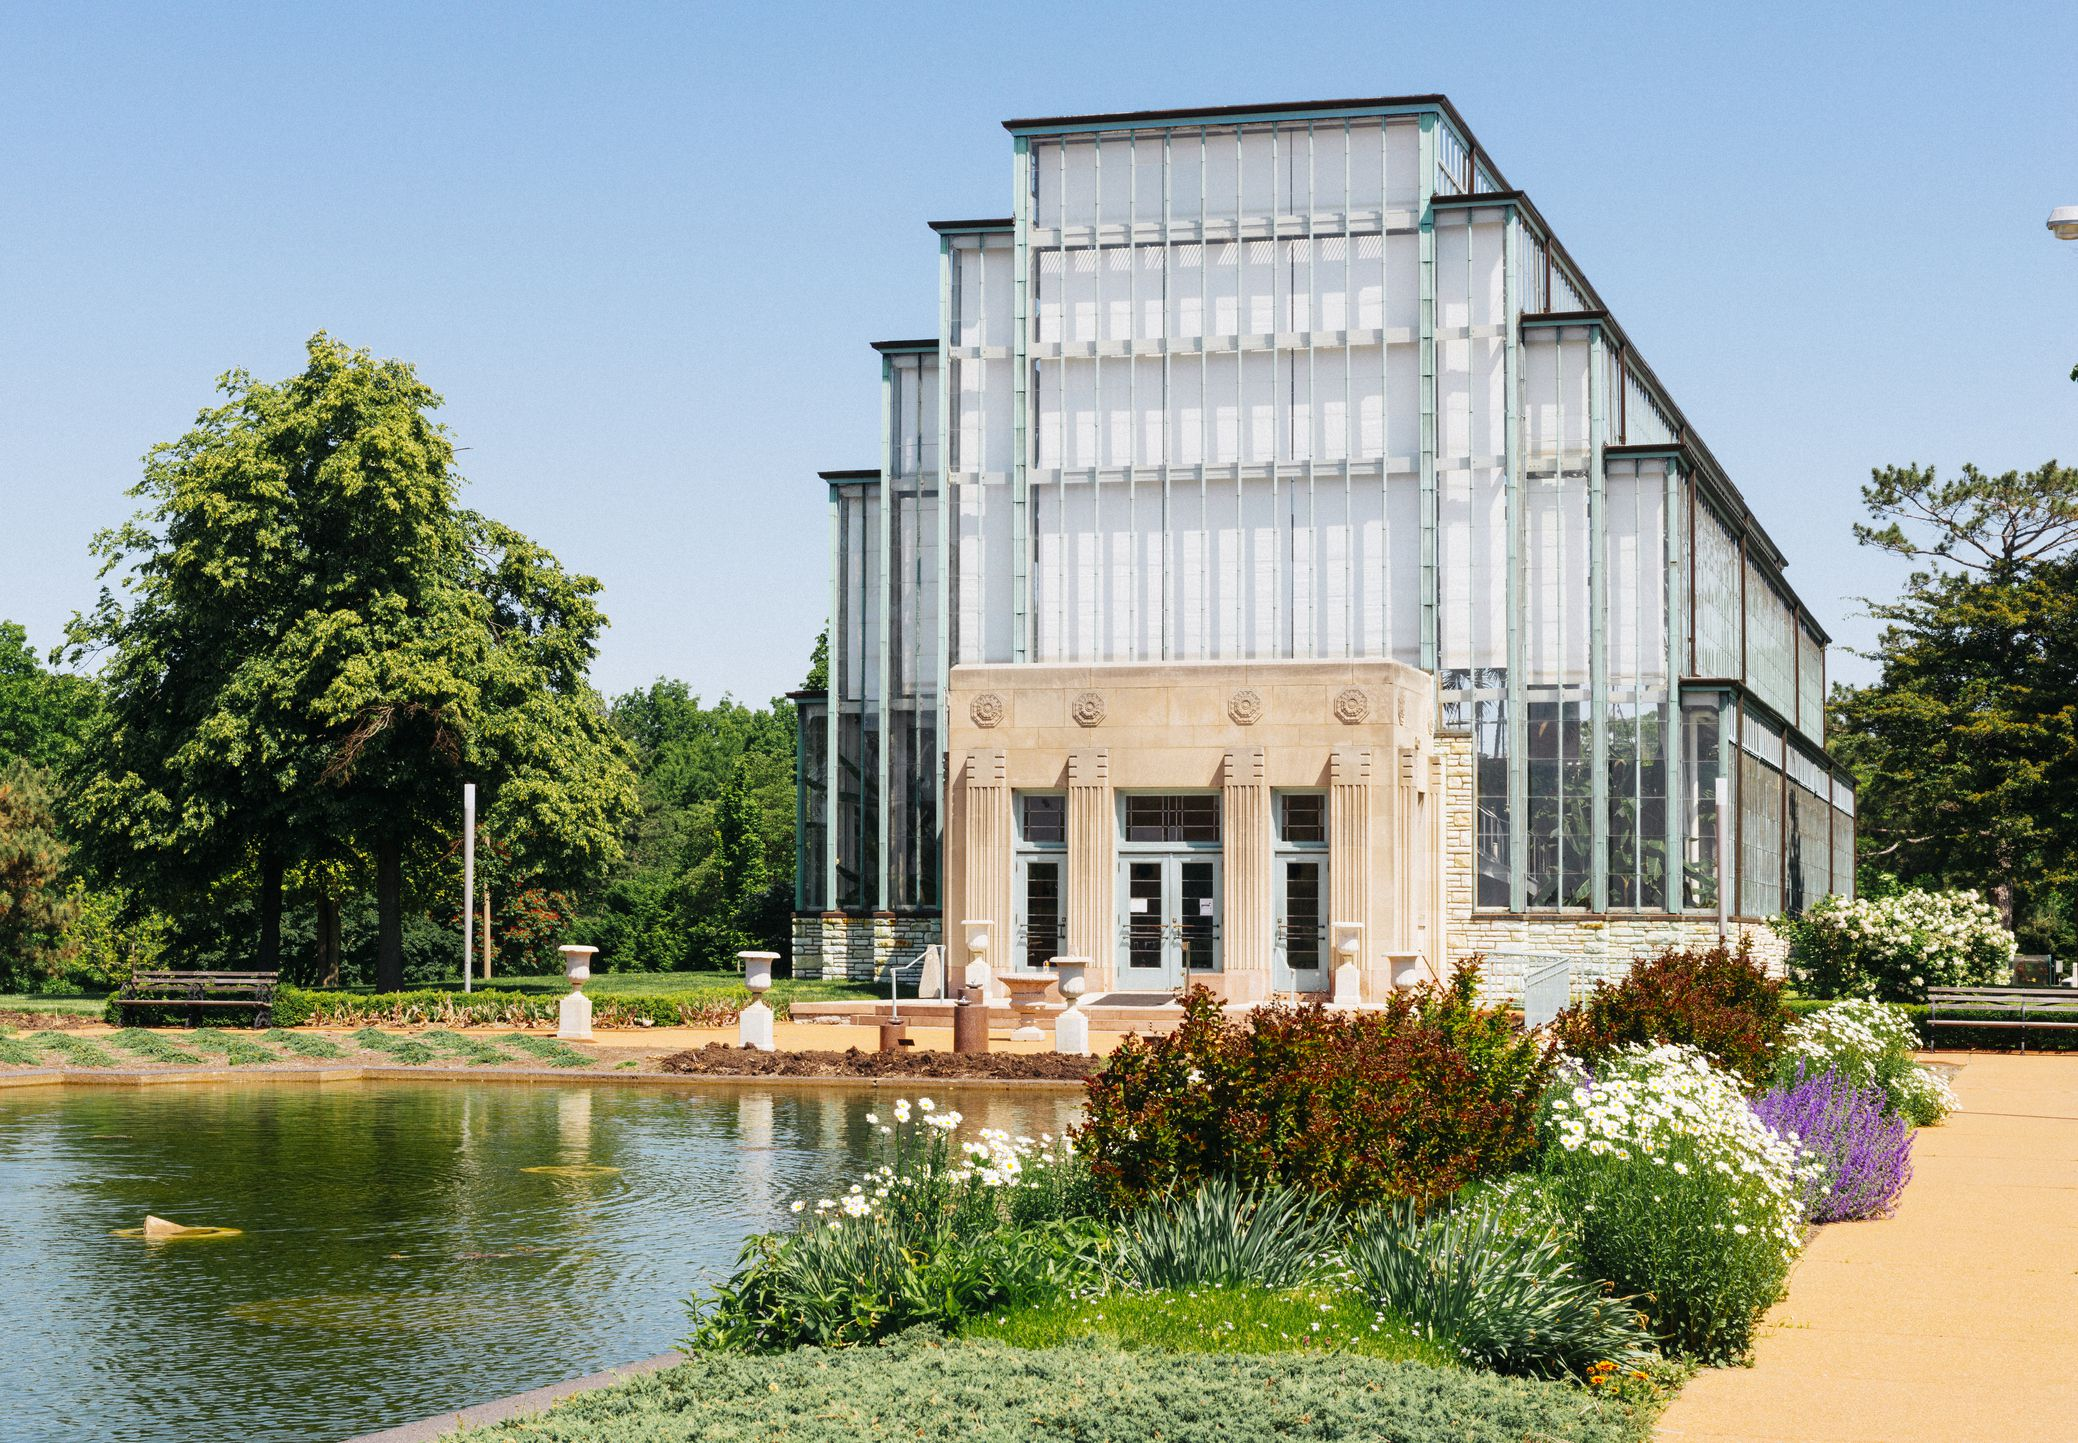 he landmark Art Deco building, the Jewel Box, is a horticultural greenhouse within Forest Park